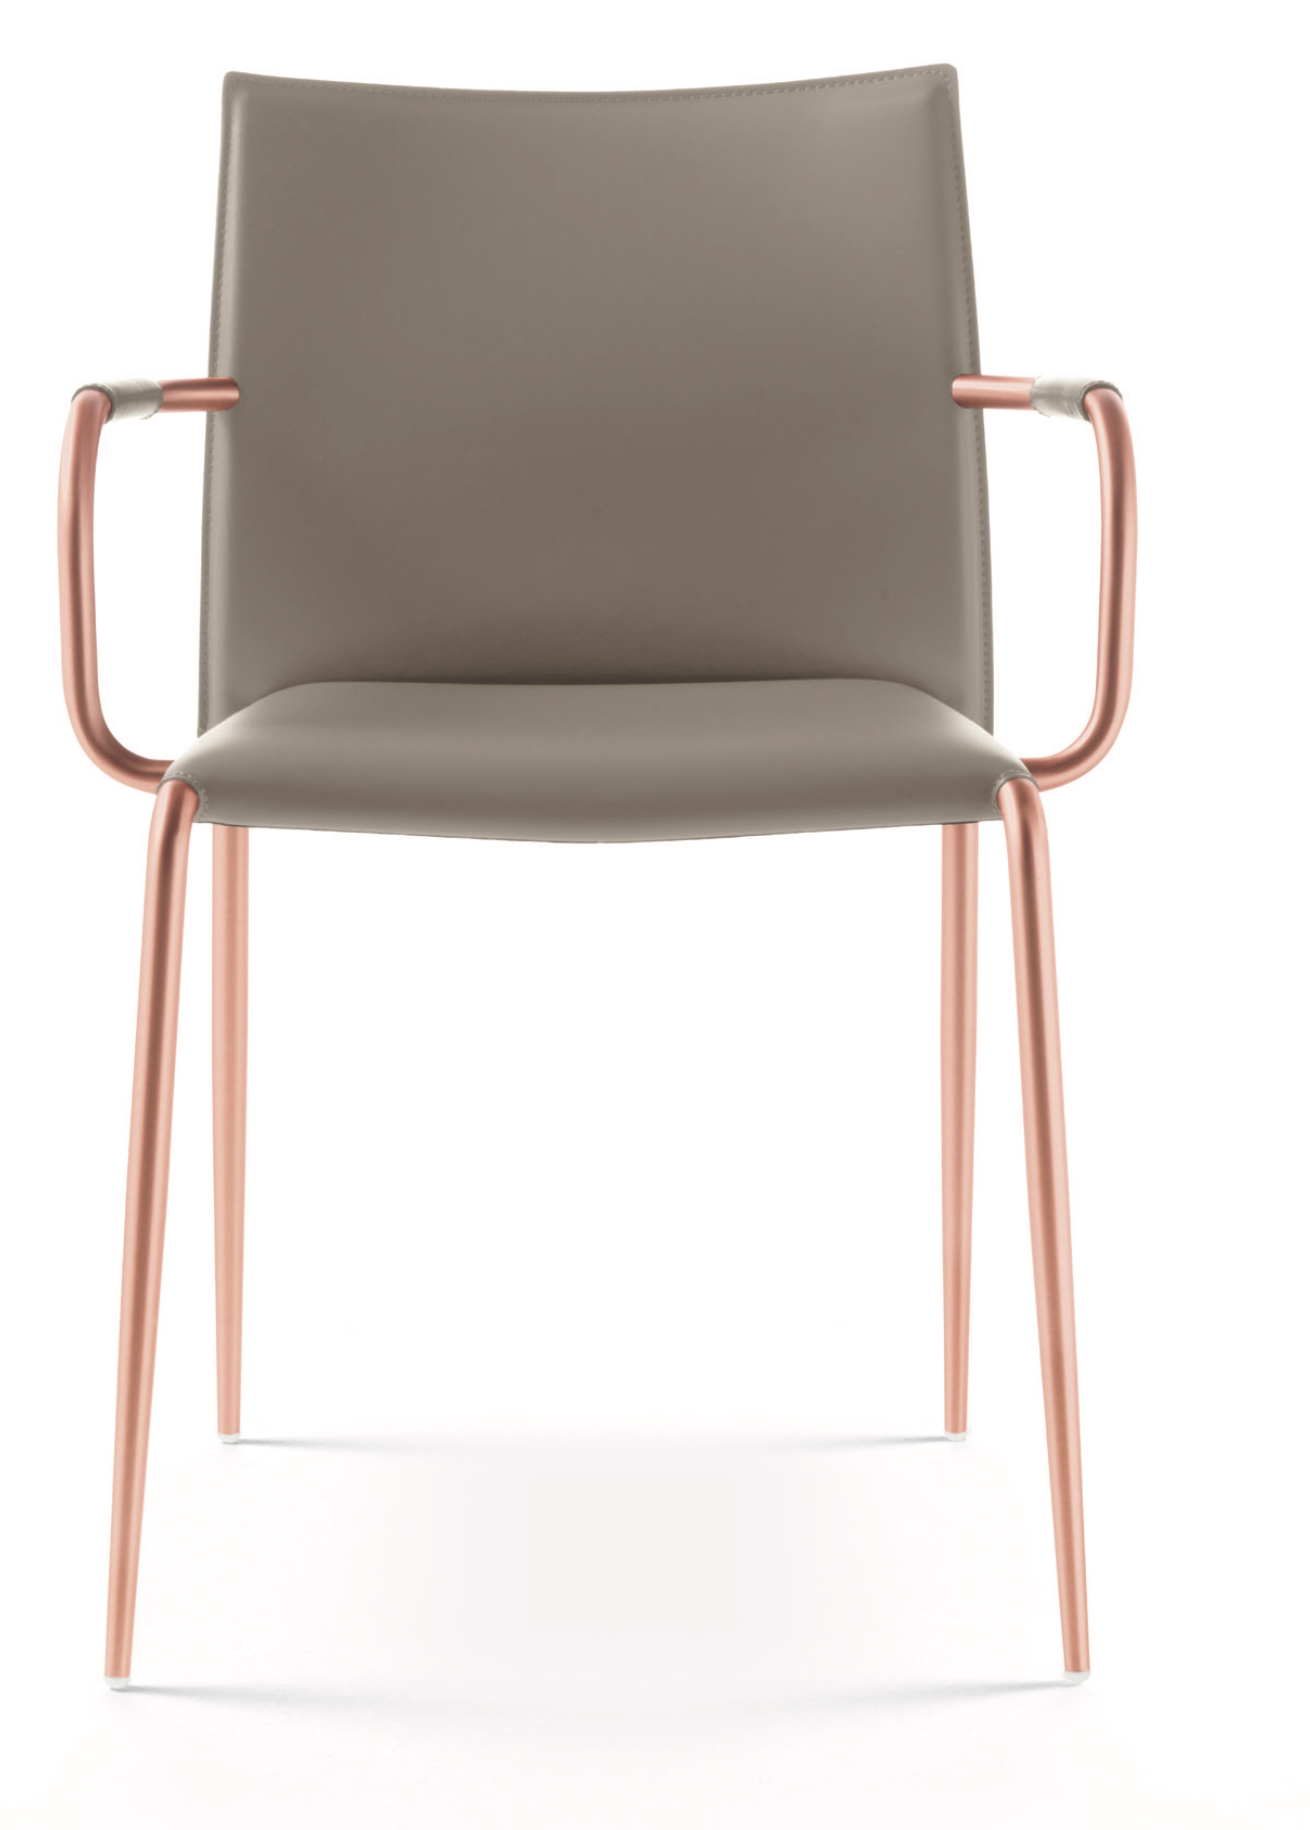 Copper Dining Chairs Dc 01 Italian Designer Chair Modern Italian Designer Furniture